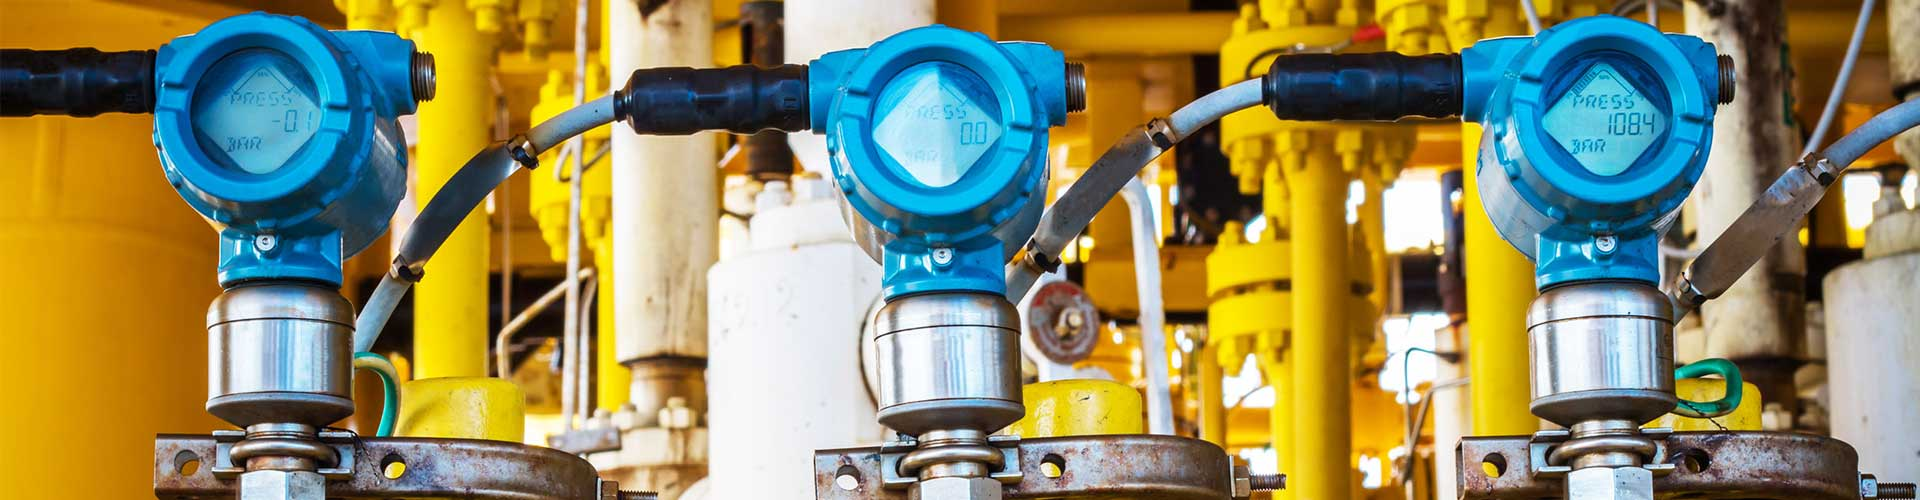 03 electrical inprotec